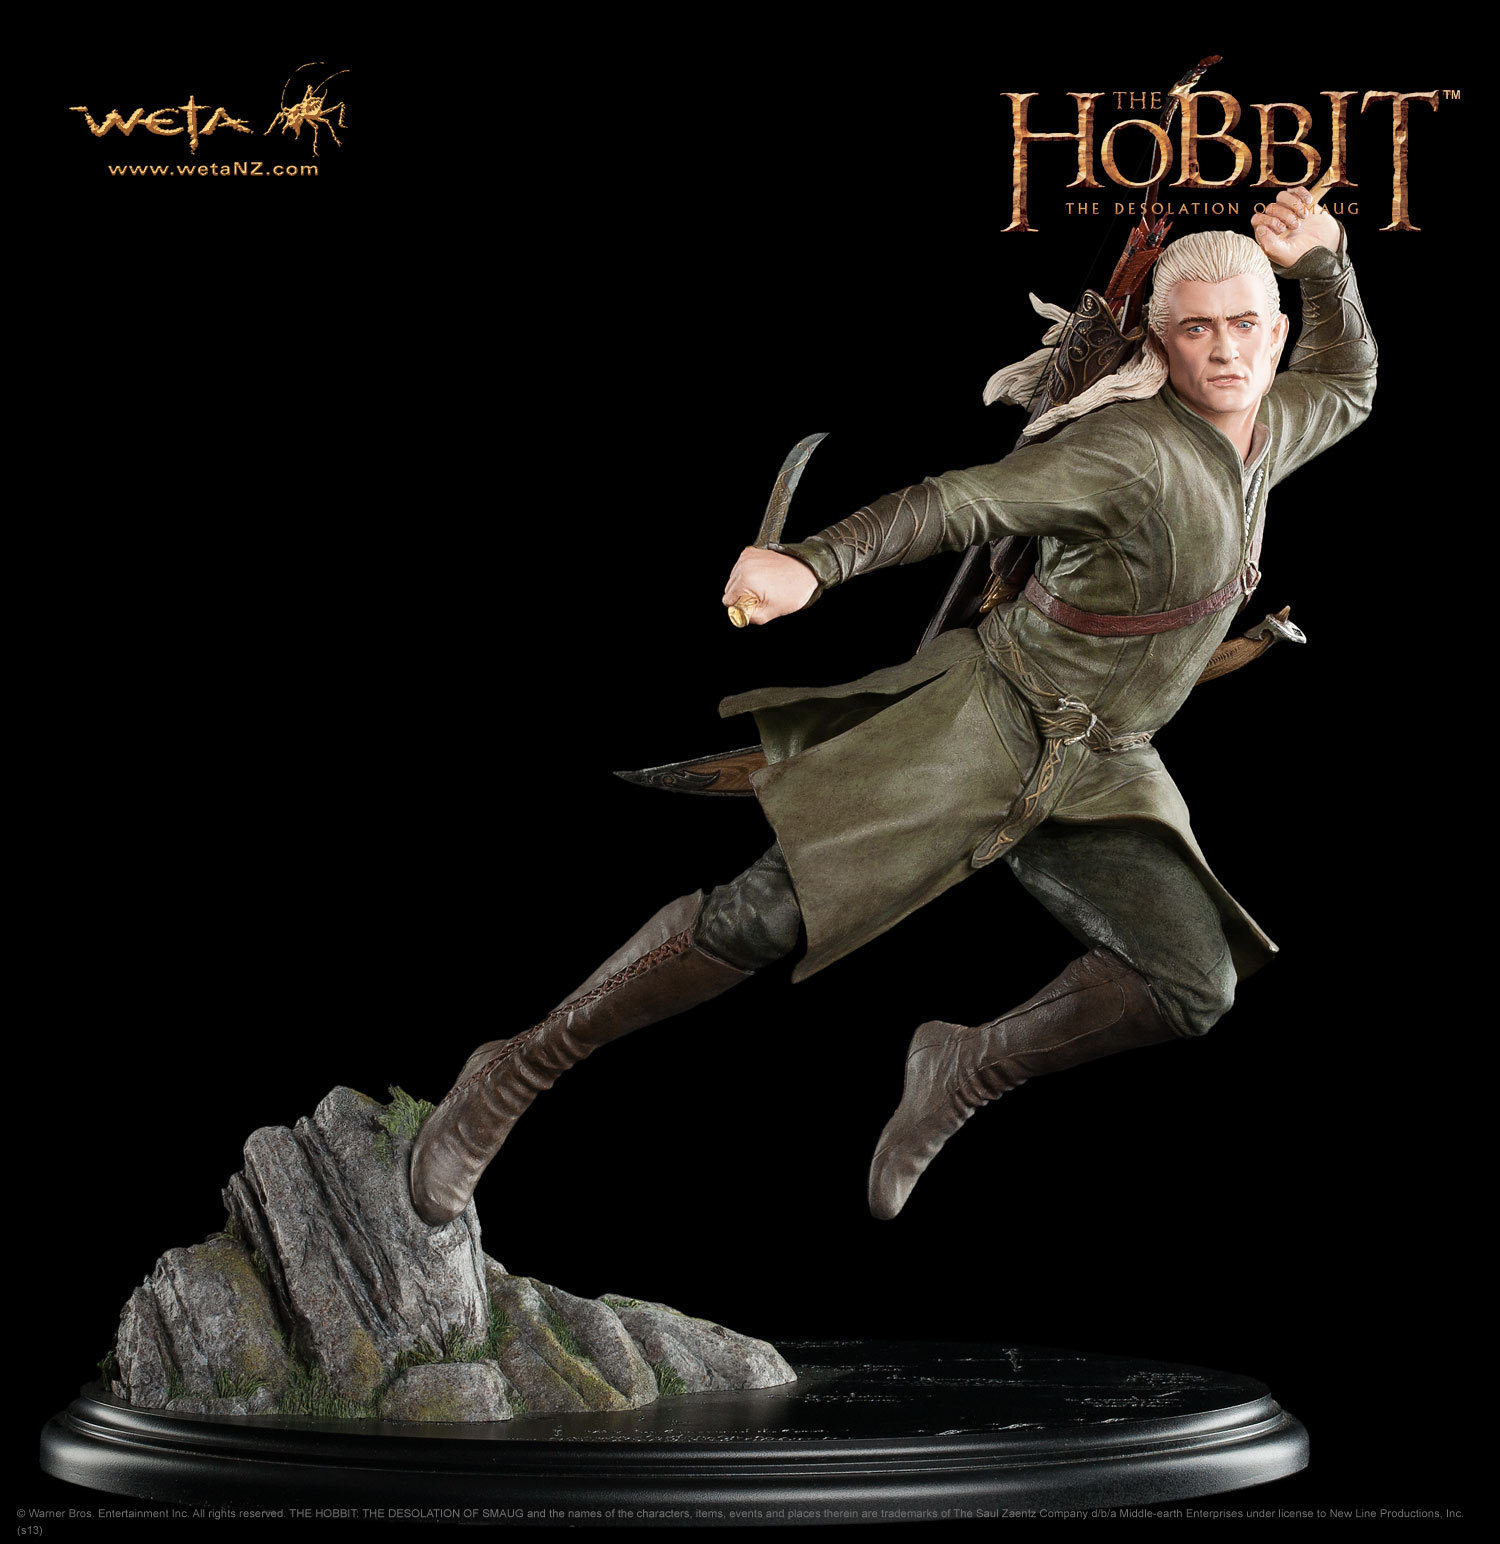 The Hobbit Legolas Greenleaf